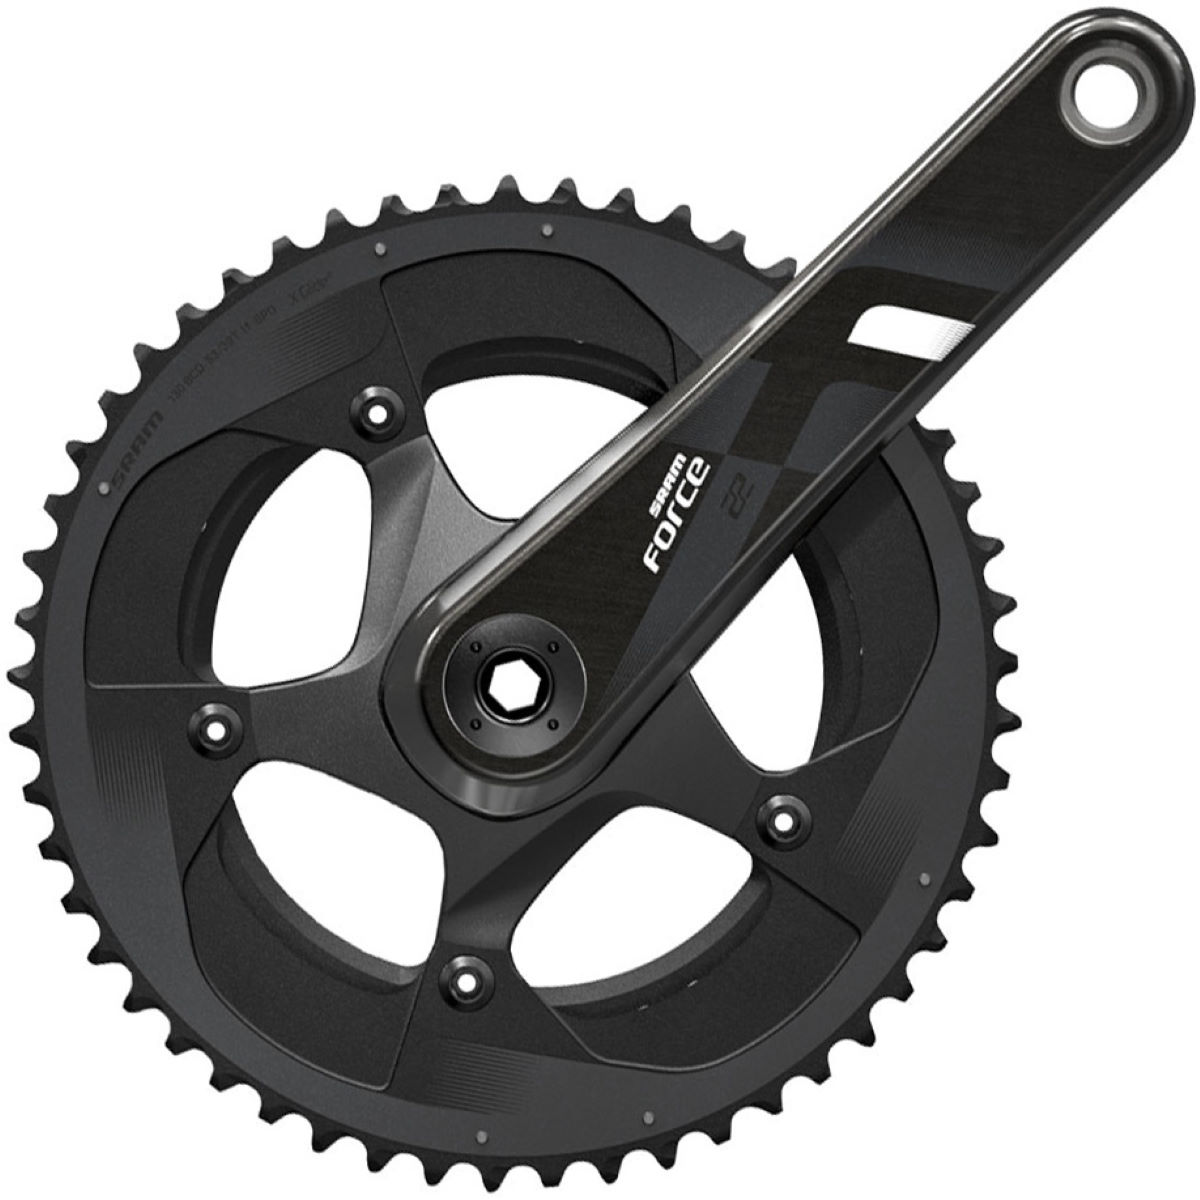 Sram Force 22 Gxp Compact Chainset - 50/34t 172.5mm Black/grey